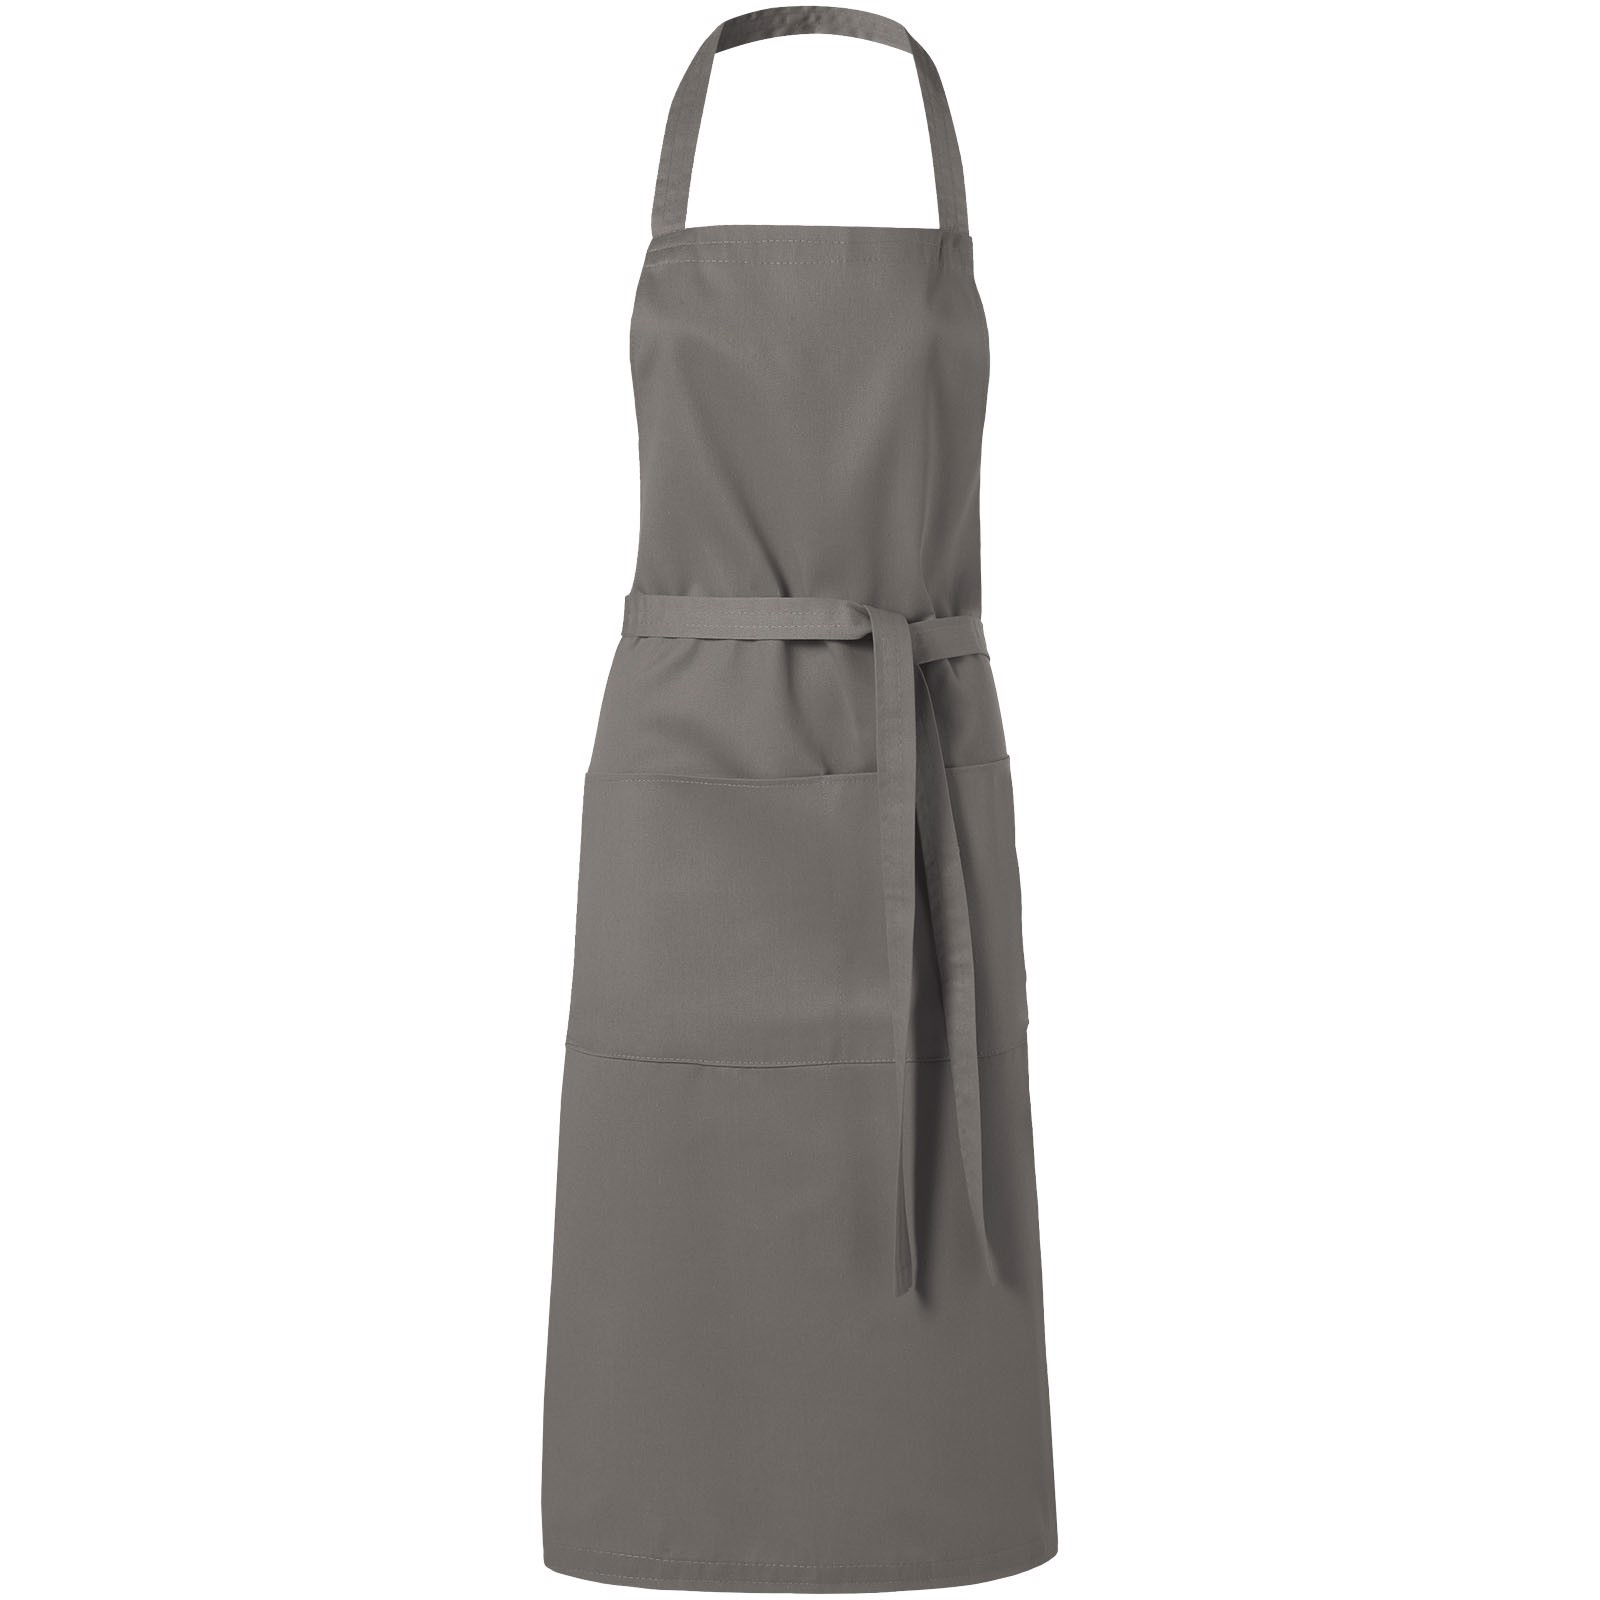 Viera apron with 2 pockets - Dark grey